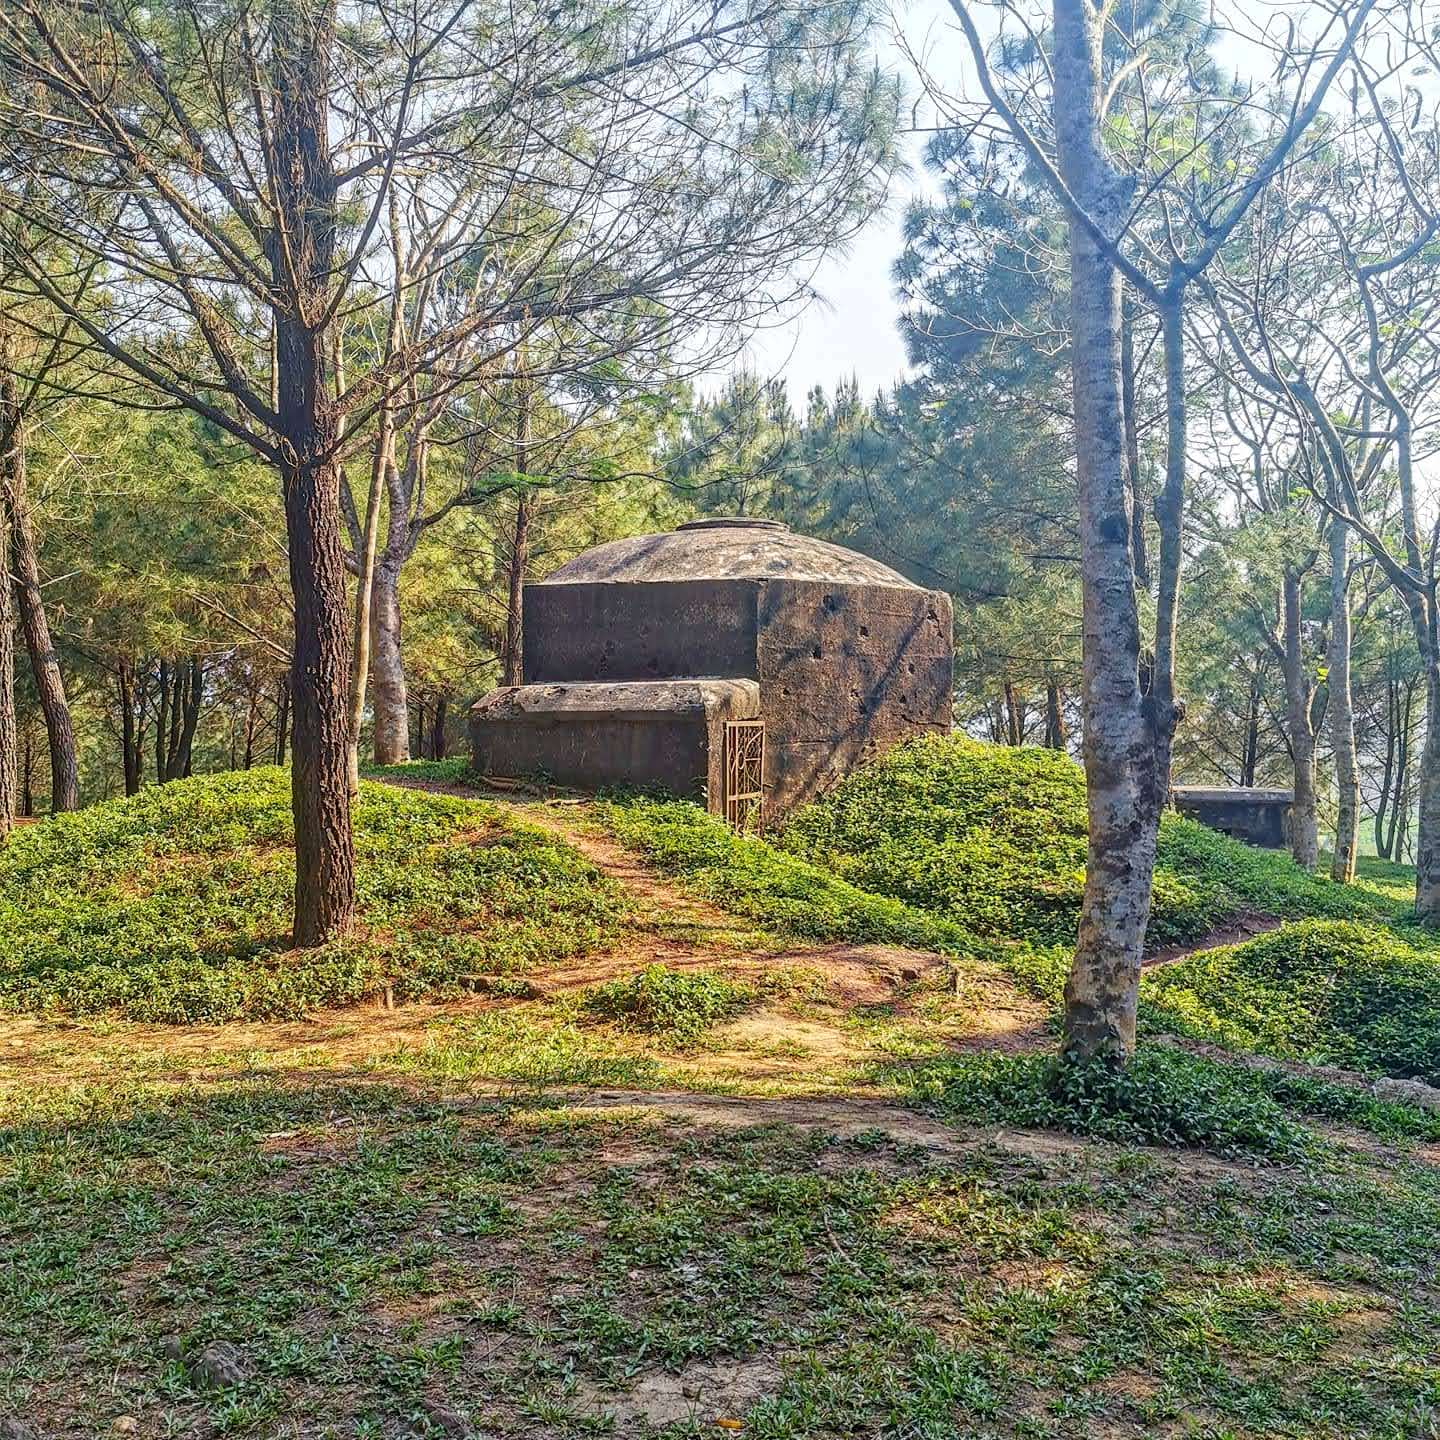 Vong Canh Hill bunkers